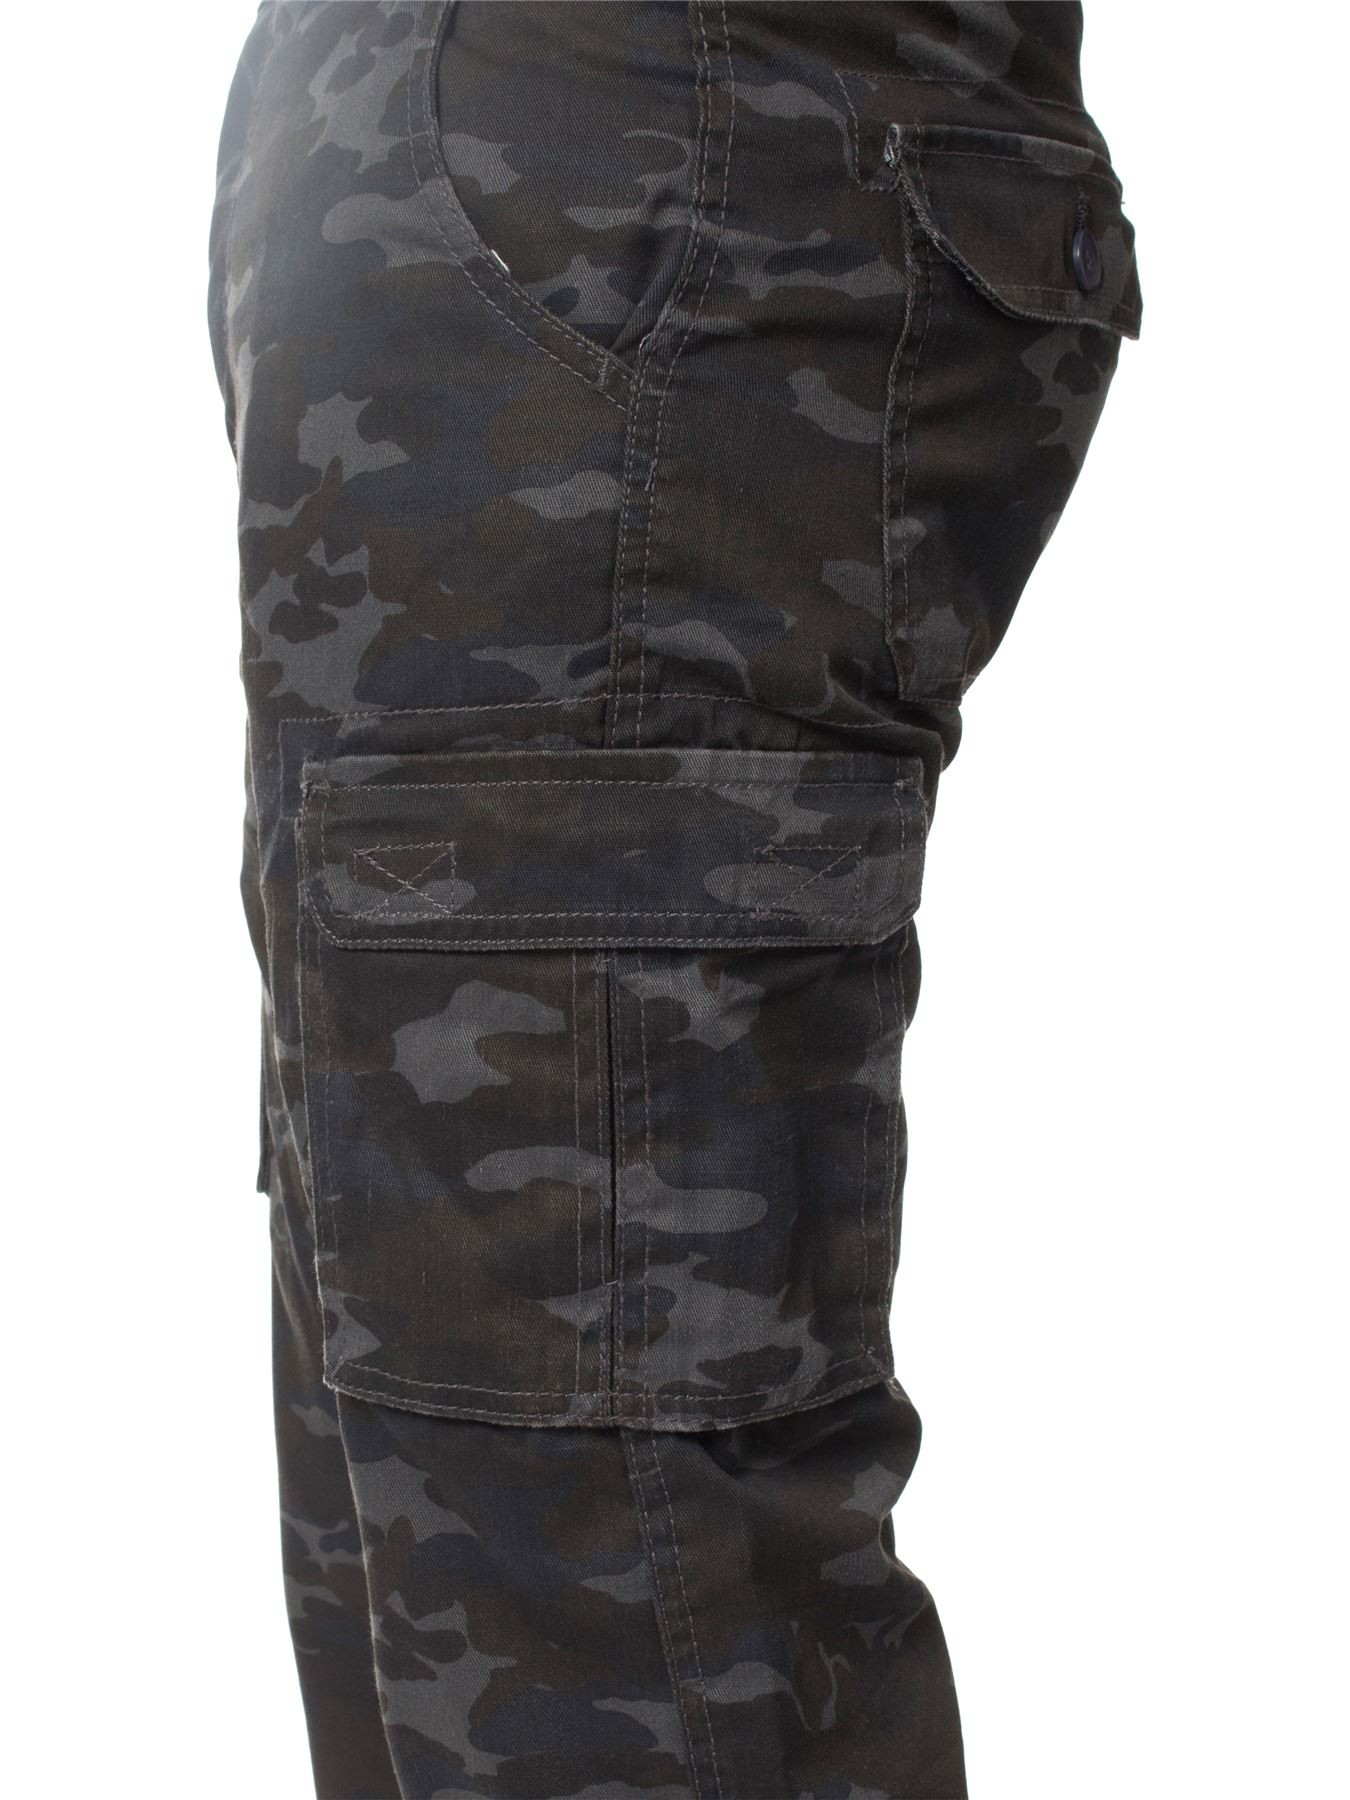 Kruze-Mens-Military-Combat-Trousers-Camouflage-Cargo-Camo-Army-Casual-Work-Pants miniatura 36